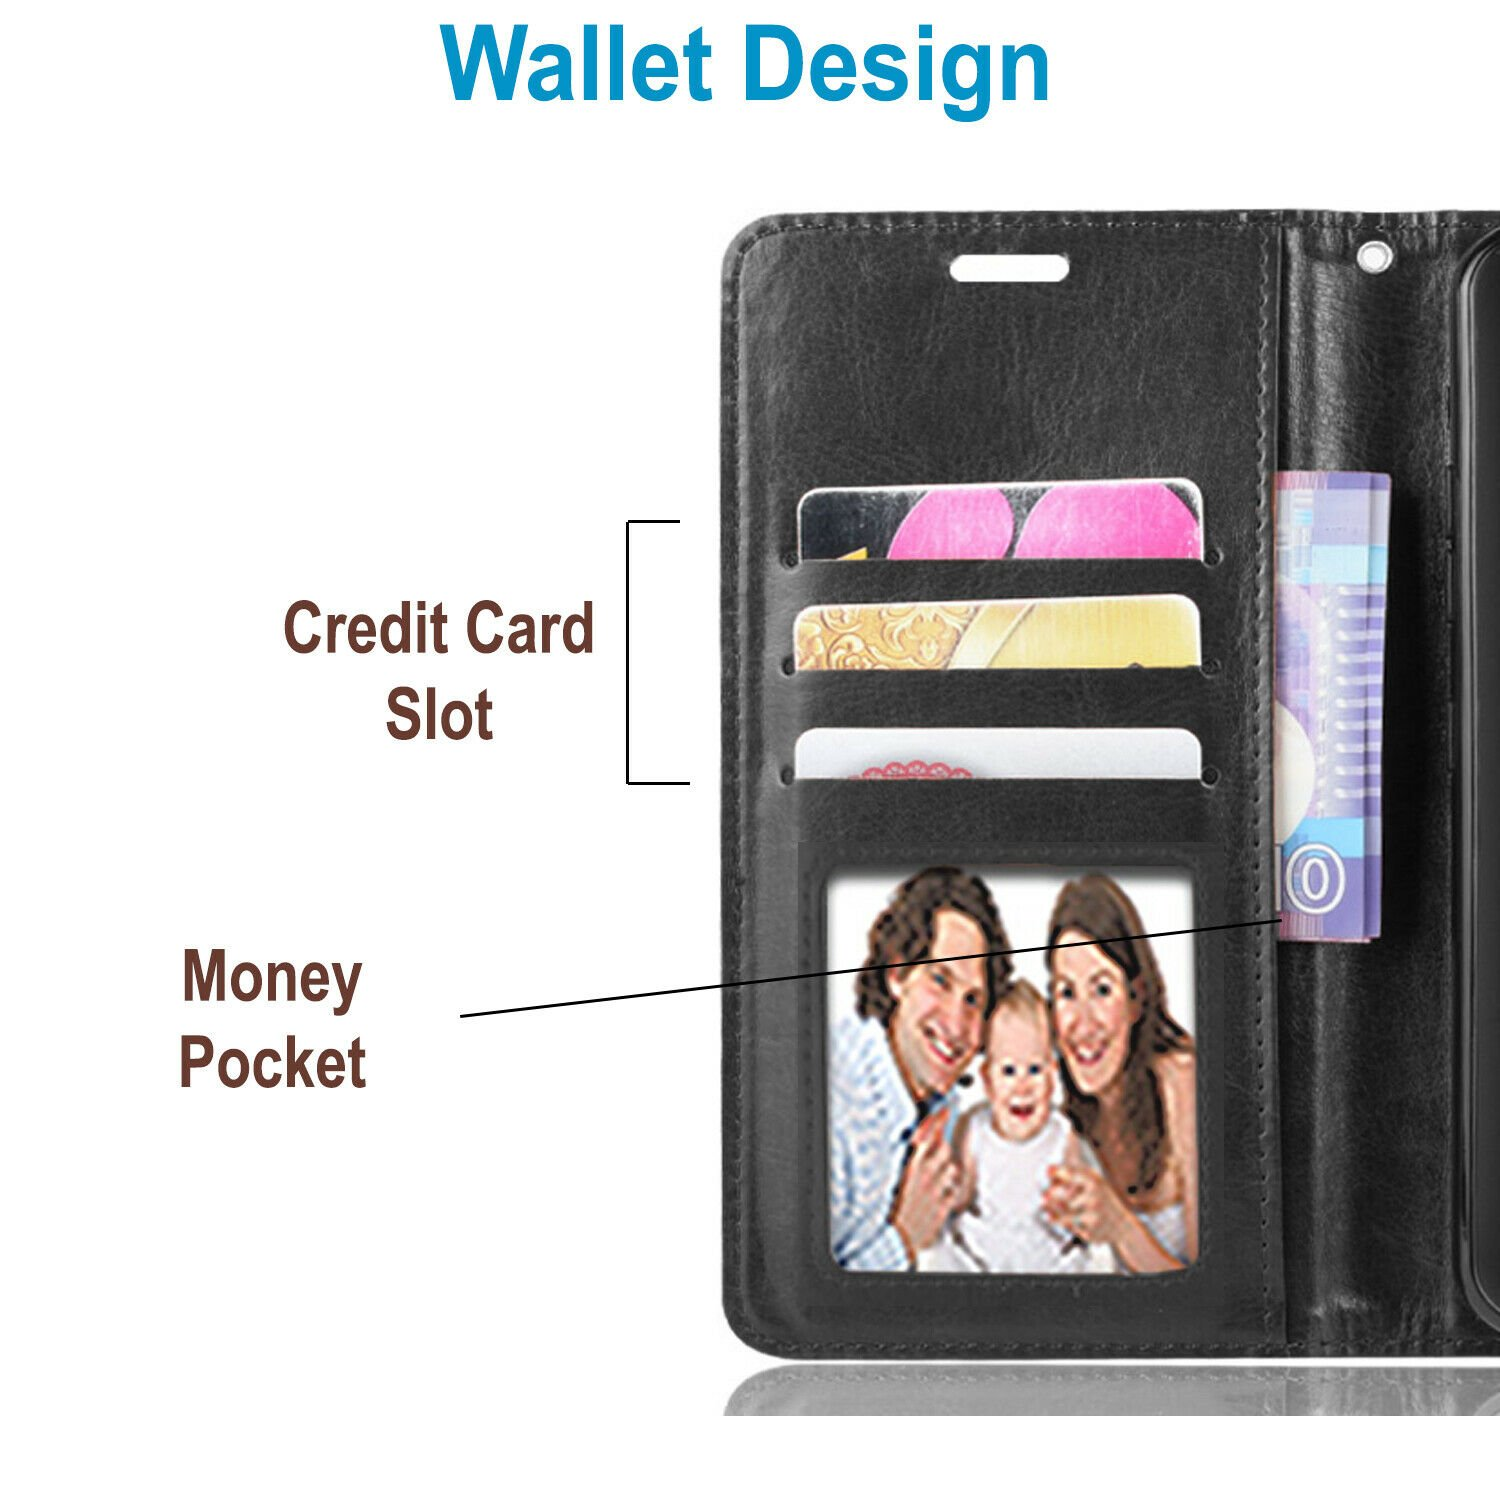 thumbnail 10 - For iPhone 7 / 8 / 7 Plus Case, Premium Wallet Cover + Tempered Glass Protector